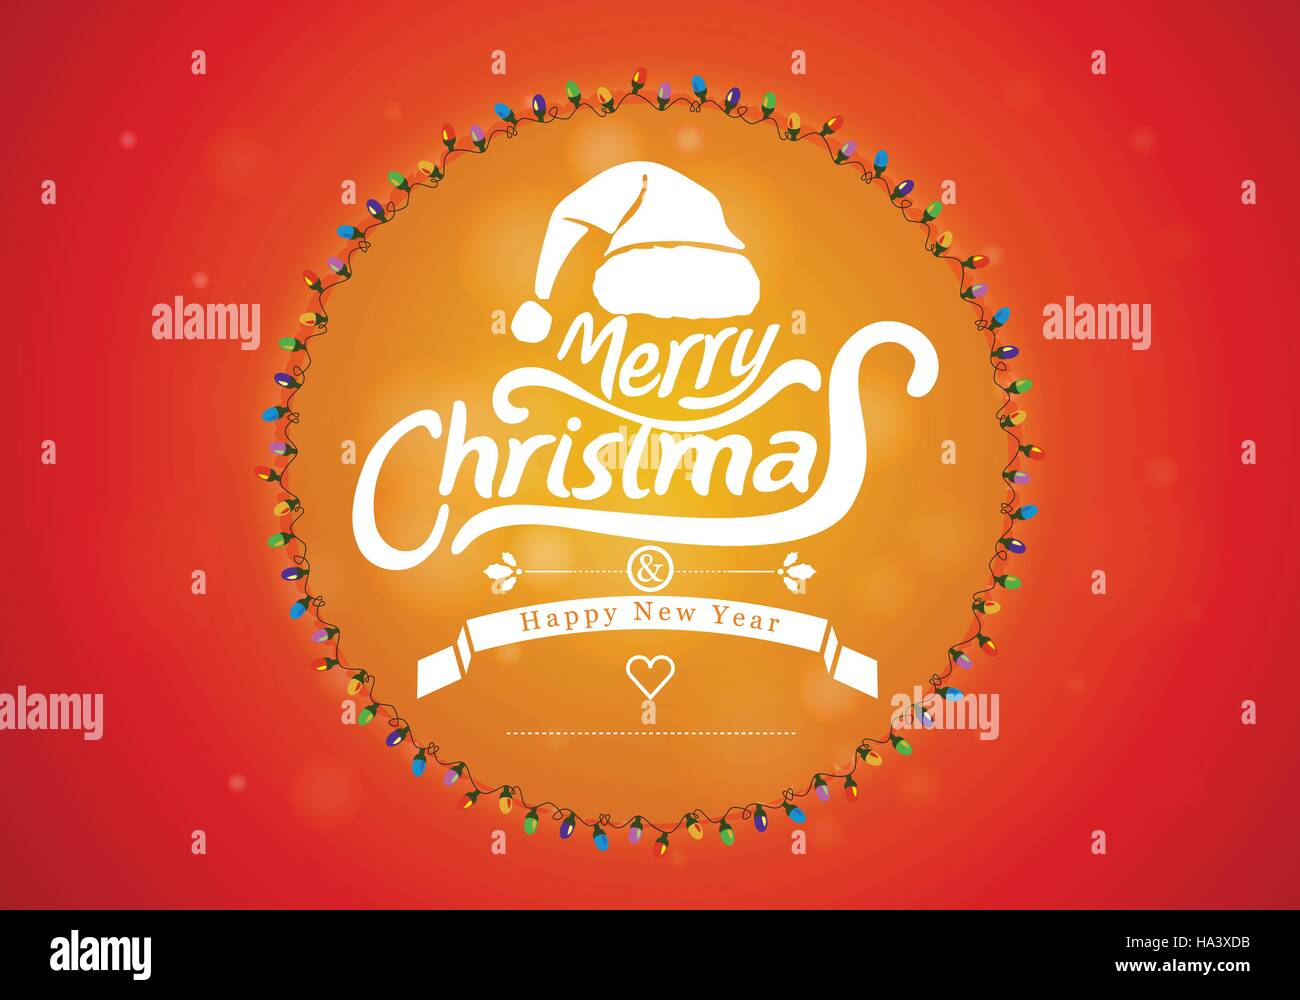 Merry Christmas and Happy new Year Vector Art - Stock Image